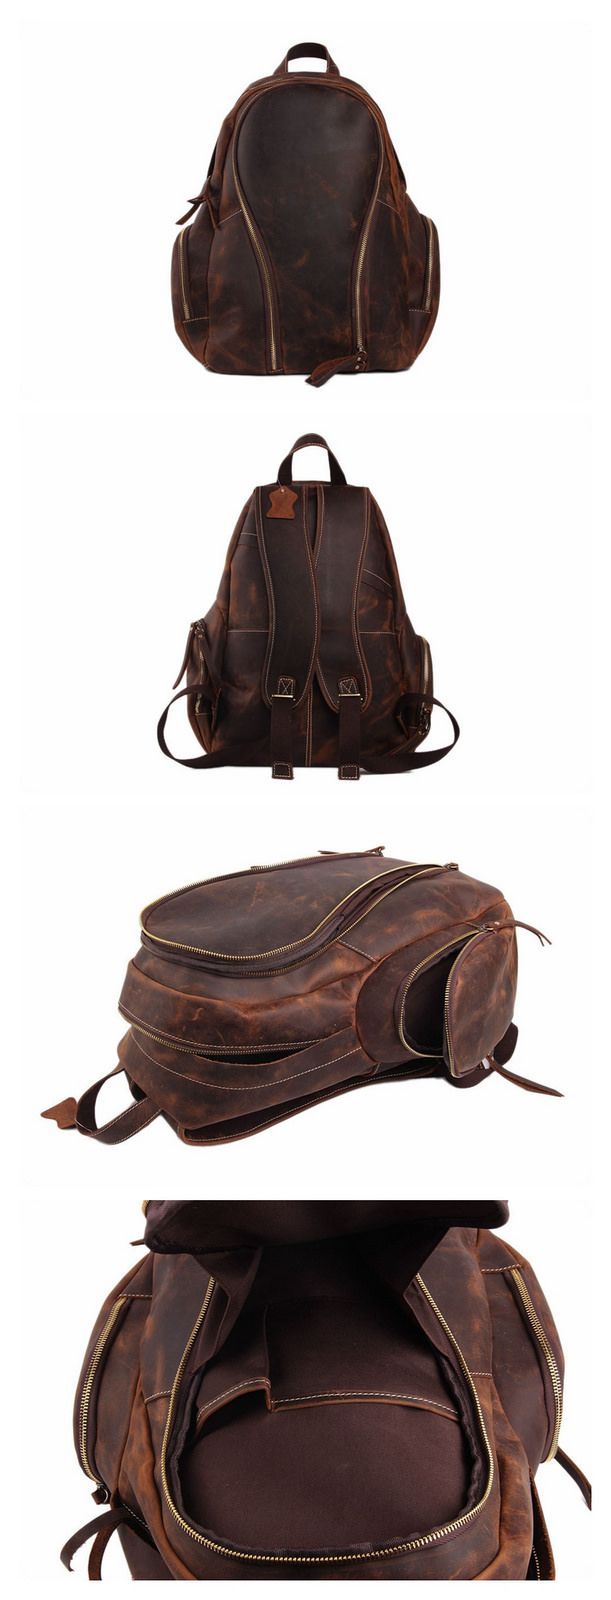 """https://flic.kr/p/vvvjWZ   光影魔术手拼图JW10   Handcrafted Genuine Leather Backpack Travel Backpack,Laptop Bag, School Backpack  <a href=""""http://www.moshileatherbag.com/products"""" rel=""""nofollow"""">www.moshileatherbag.com/products</a>"""